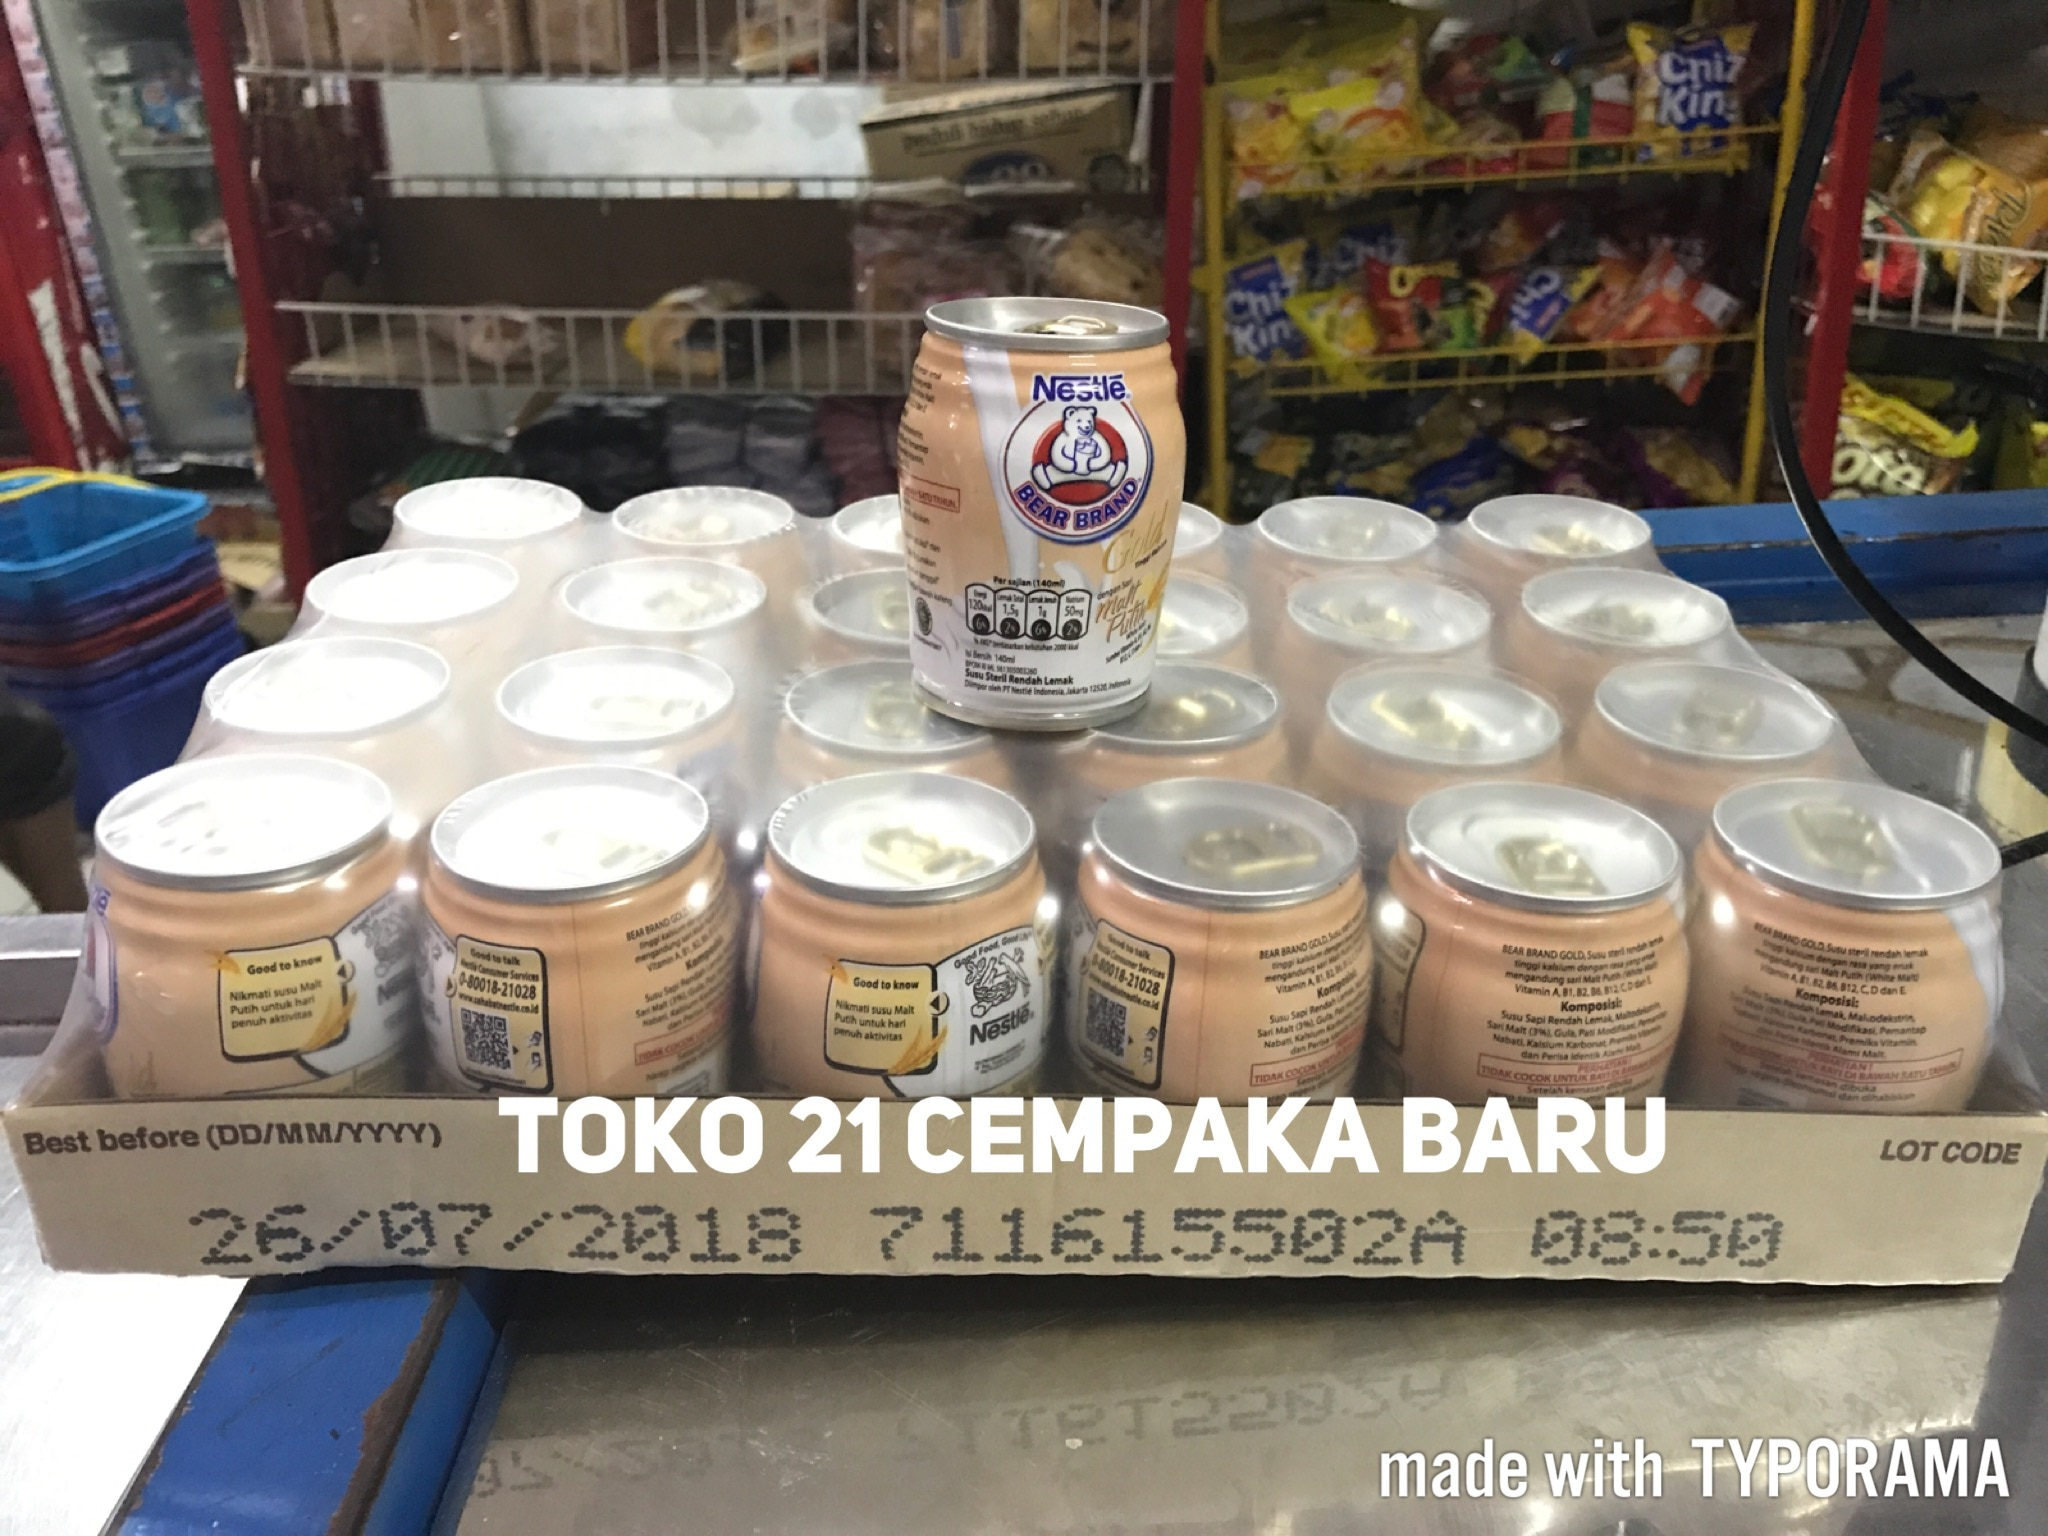 ... Brand Gold White Malt Minuman Siap Minum 140ml 24 Pcs Spesikasi Lengkap. Source · Ready To Drink 140 Ml Karton Isi 24 Source · Jual Nestle Bear .